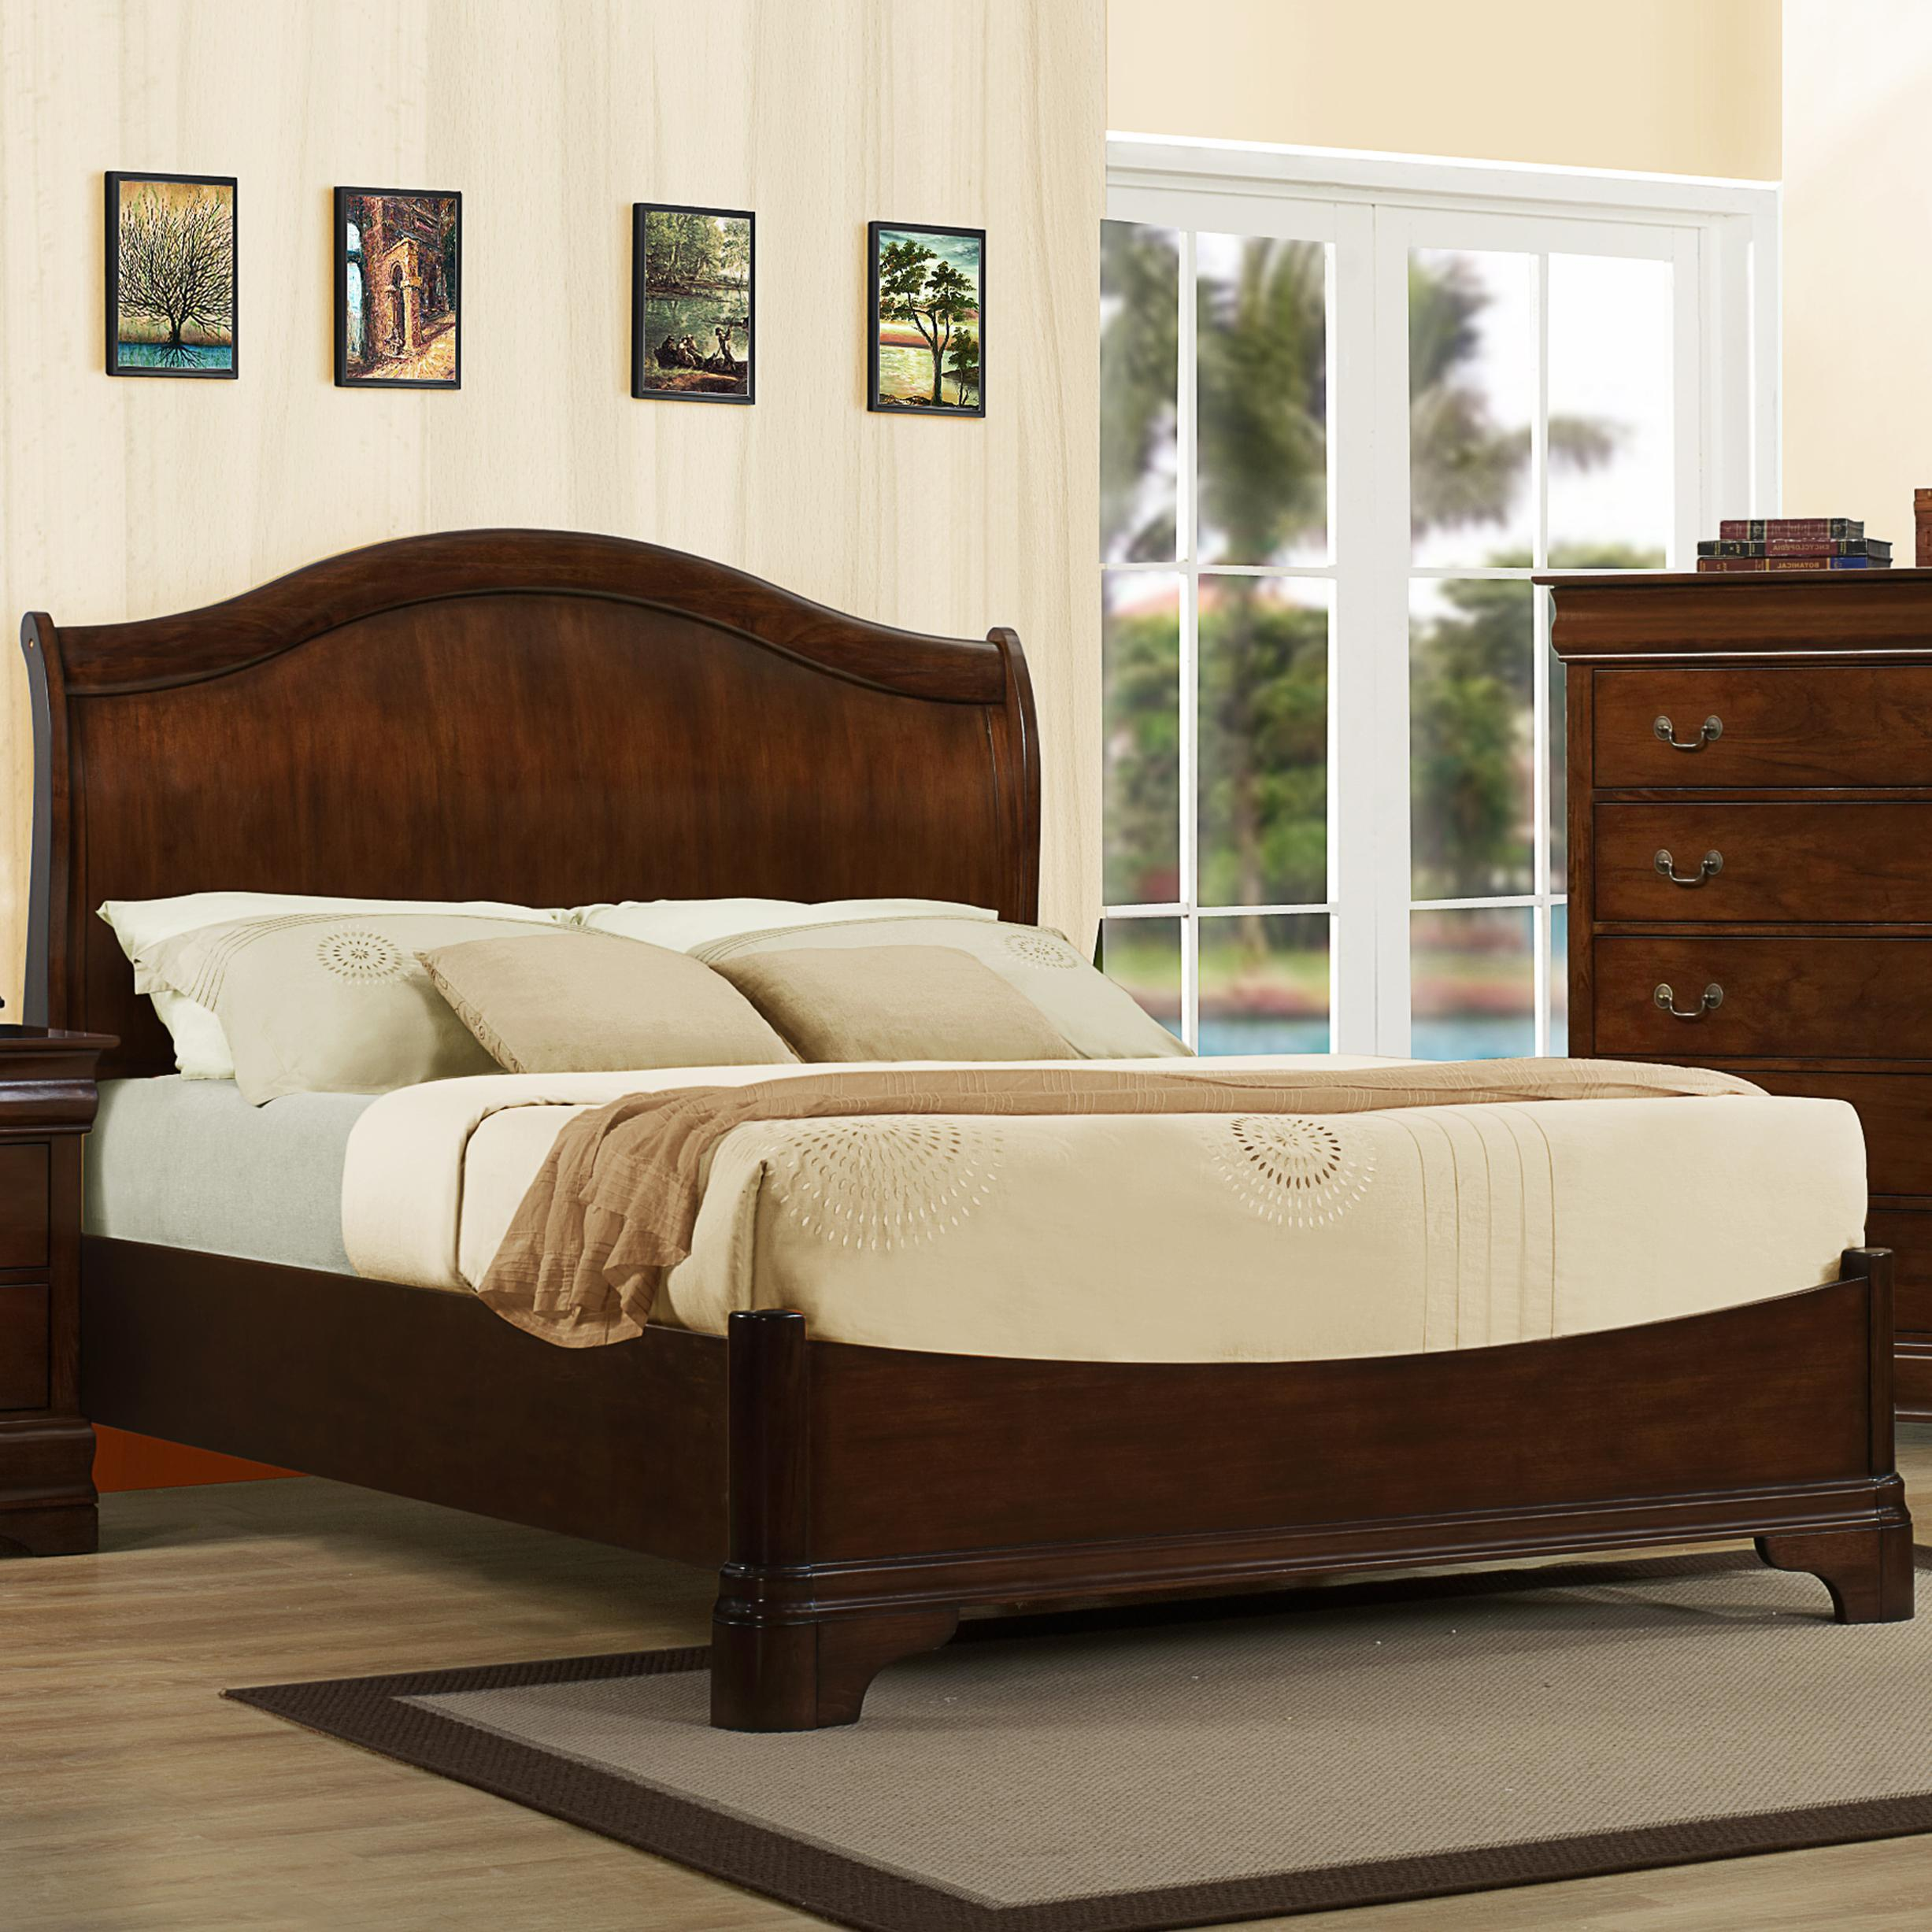 Austin Group Big Louis King Transitional Headboard Bed - Item Number: AUGR-GRP-456-KGBED